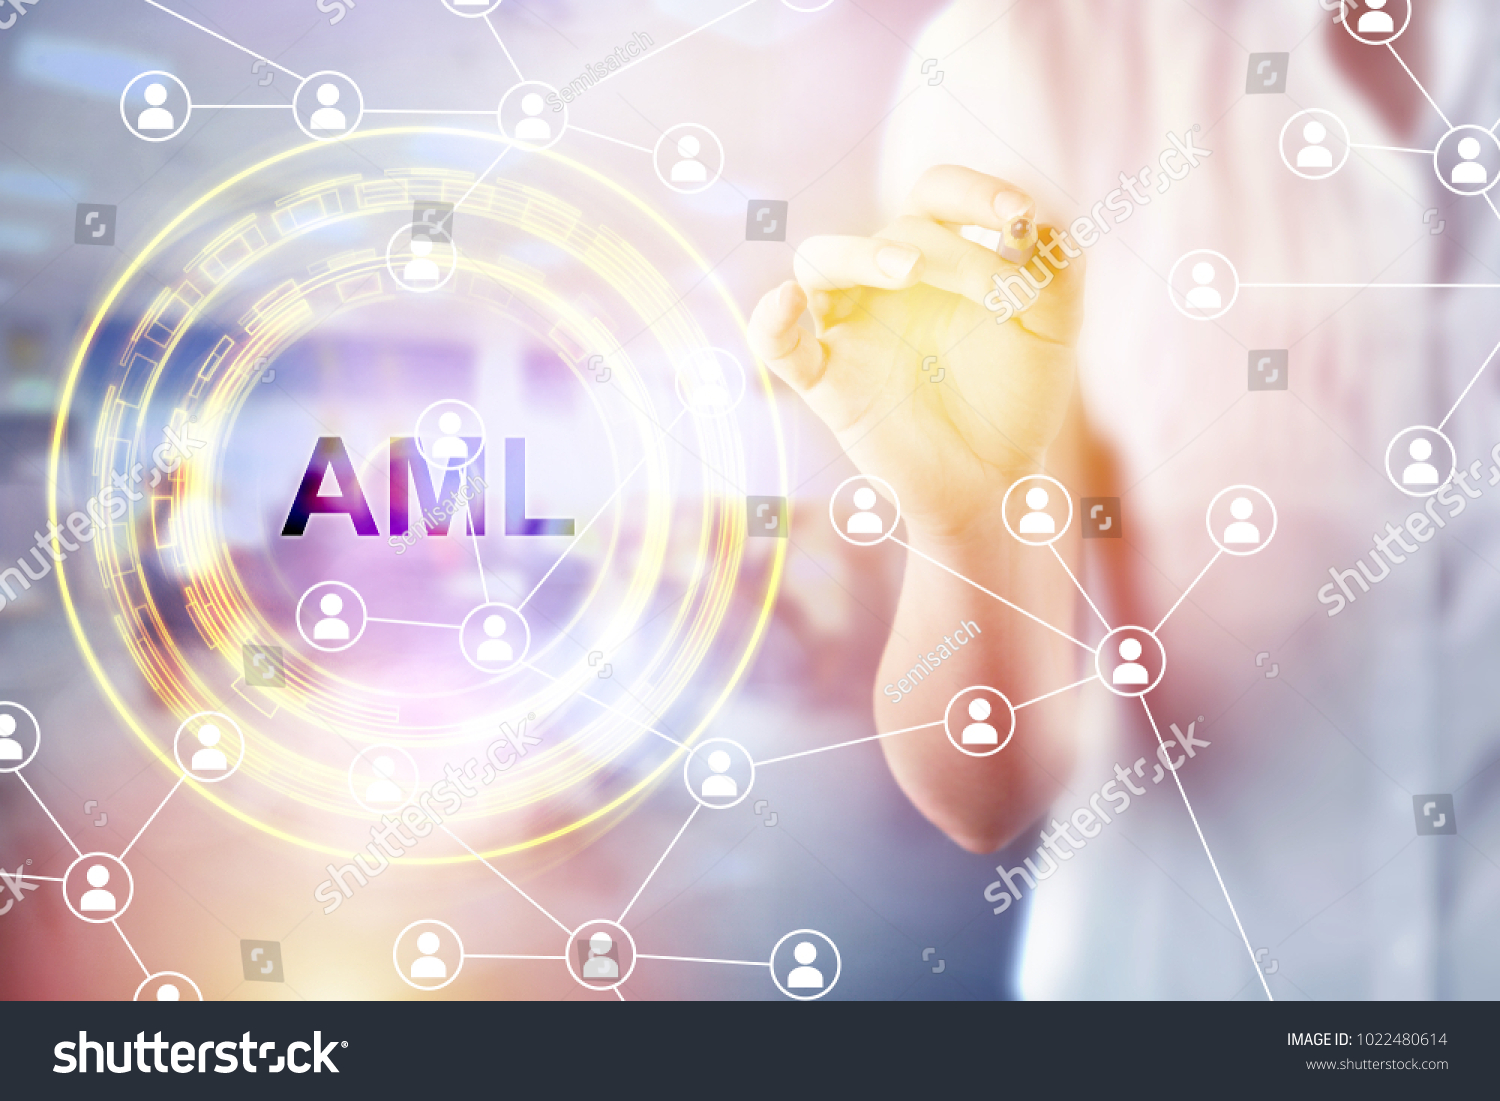 Anti money laundering concept image business stock photo anti money laundering concept image of business acronym aml anti money laundering buycottarizona Images